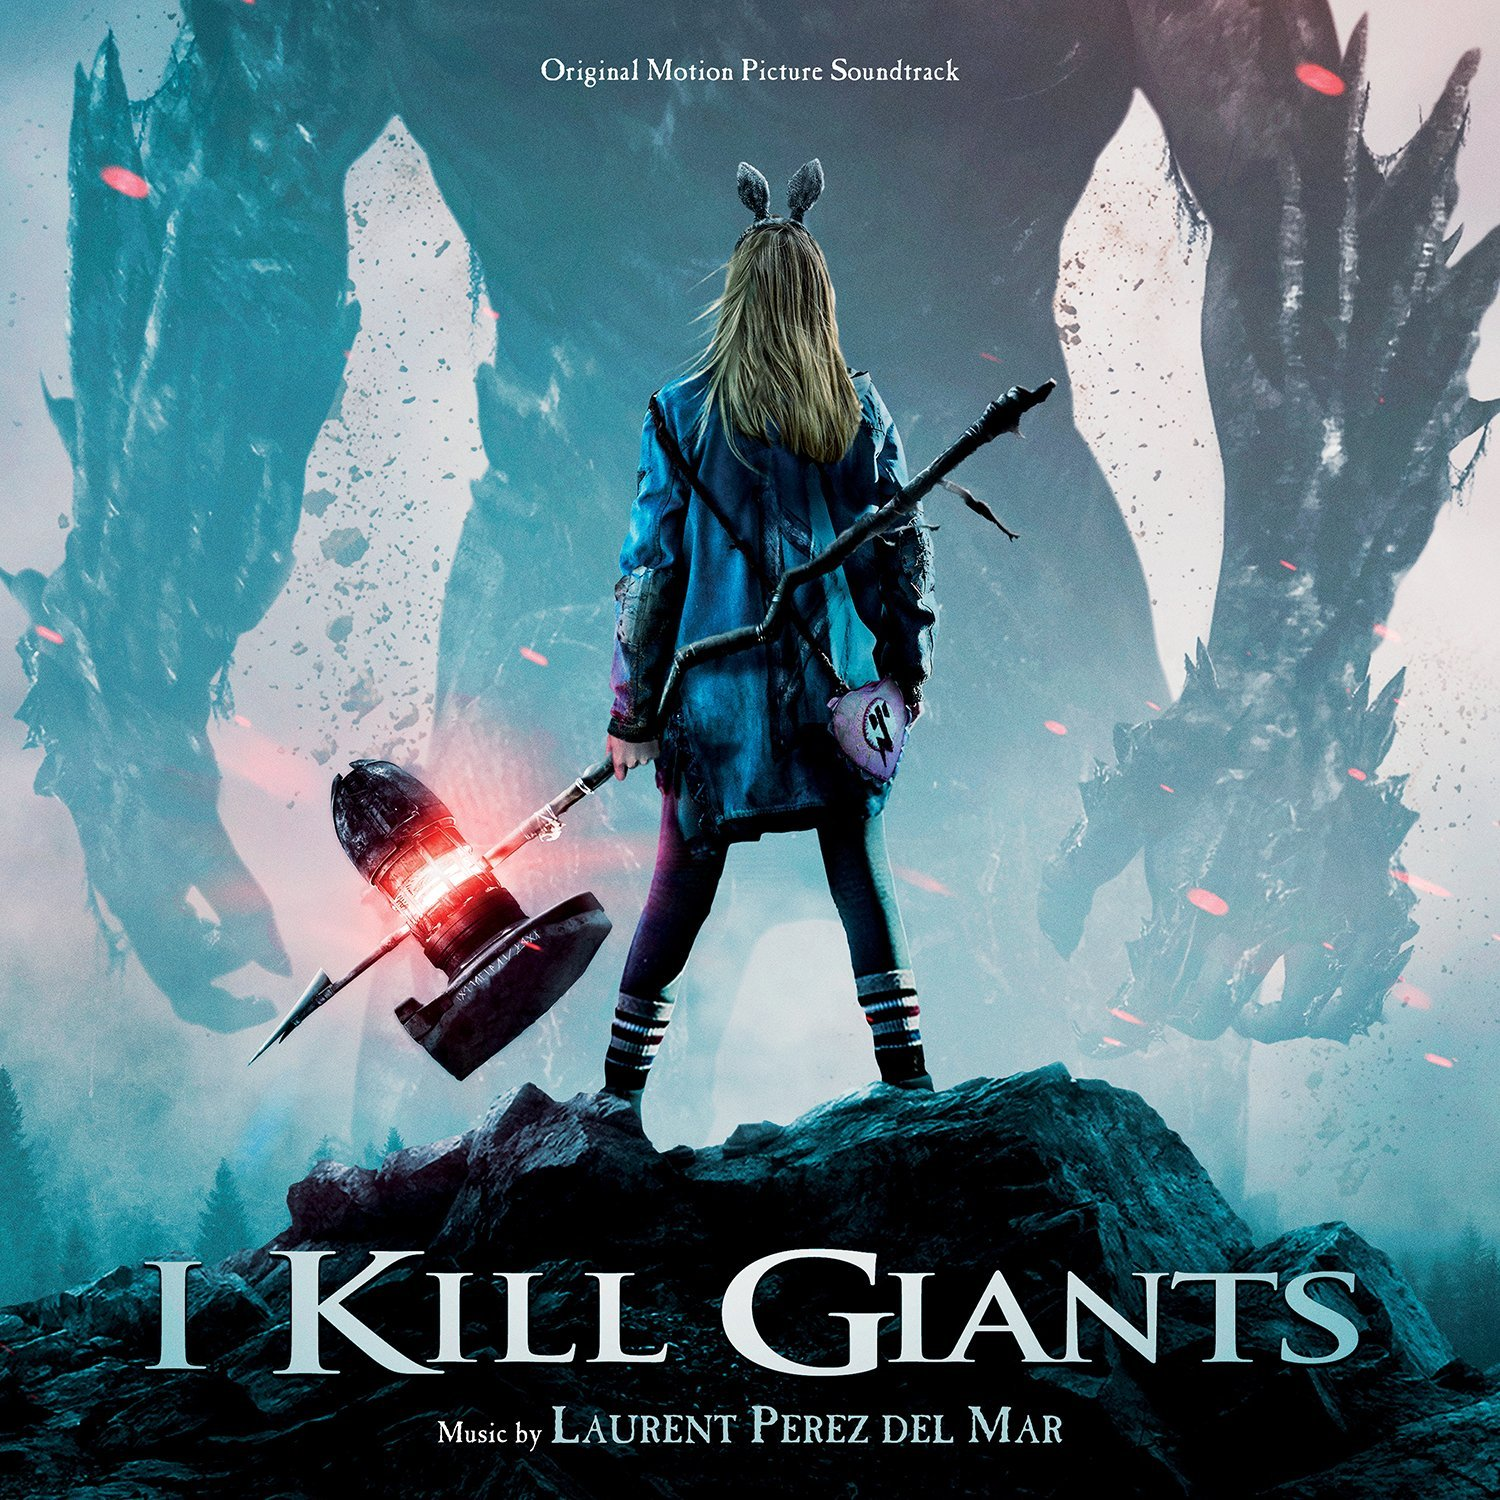 I Kill Giants, Detalles del álbum